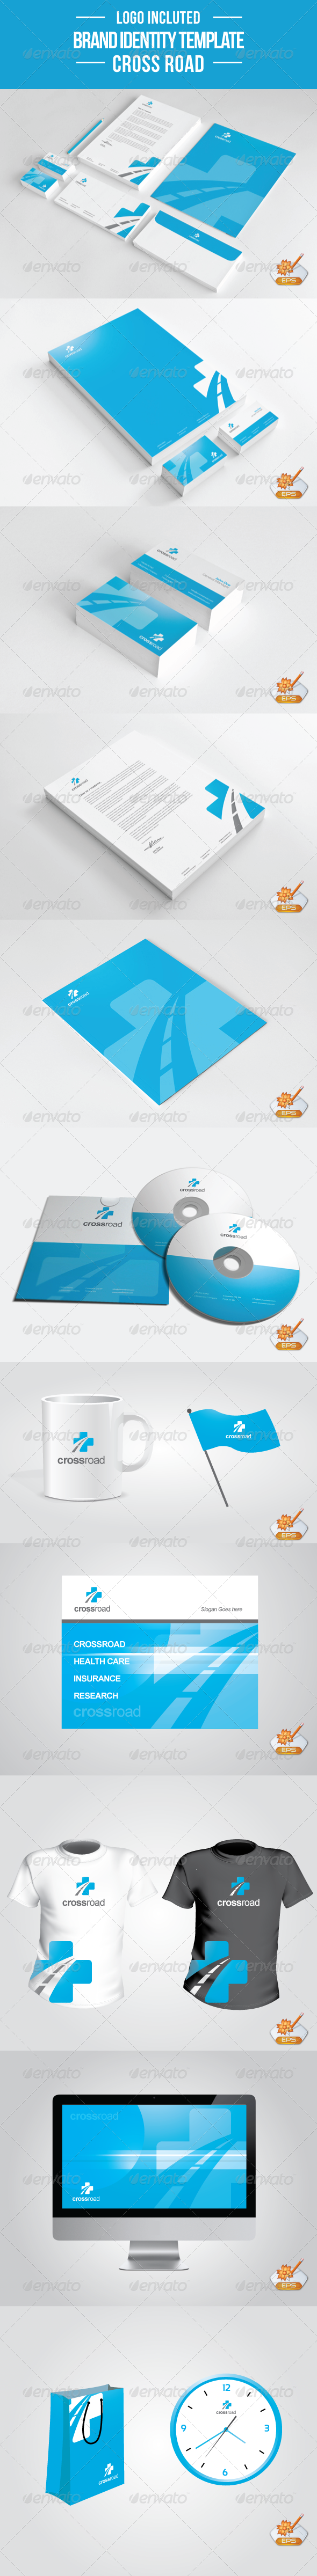 GraphicRiver Cross Road Stationery Template 2244057